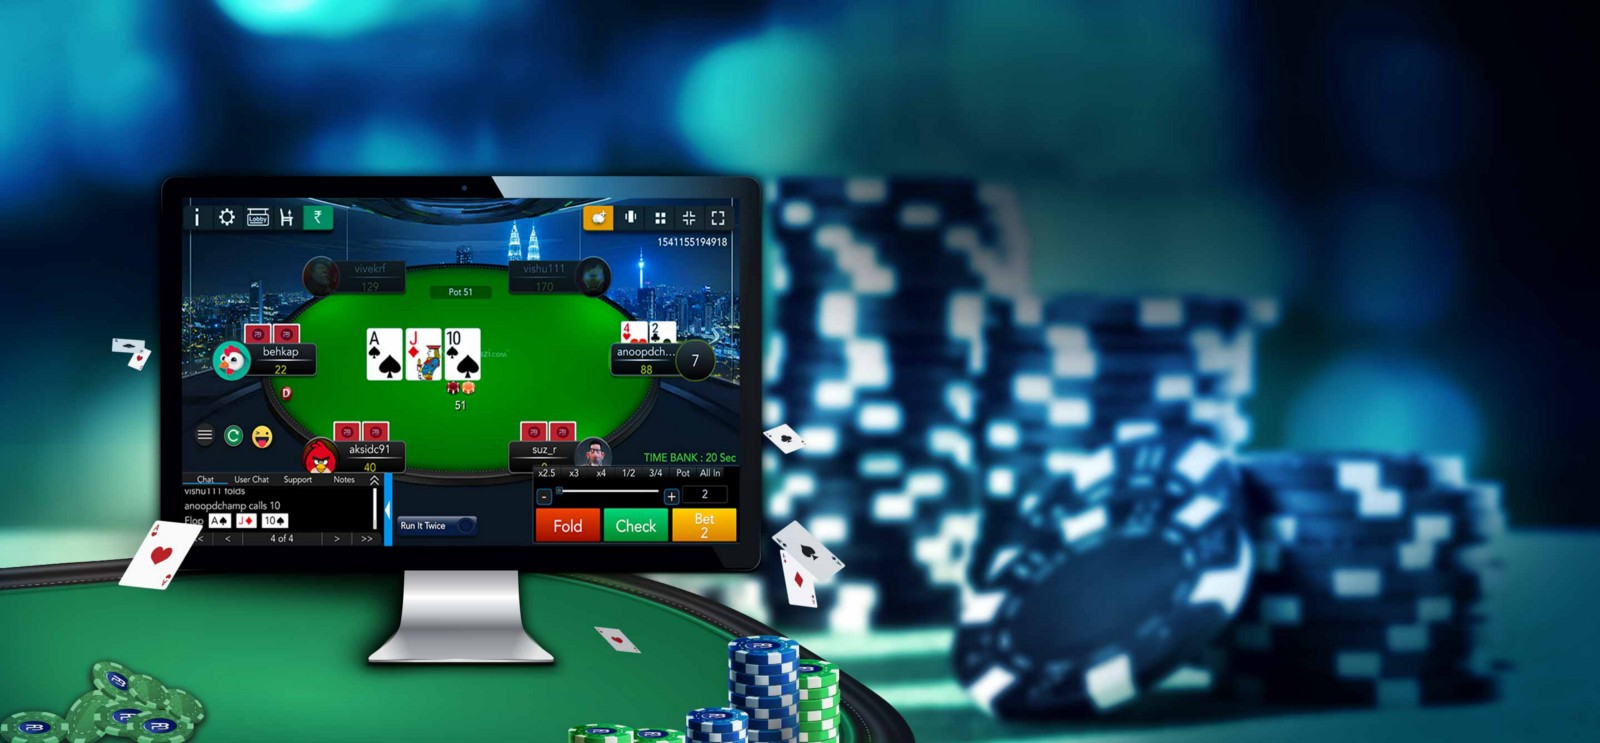 No1 Poker Sites To Get A Freeroll - Betting